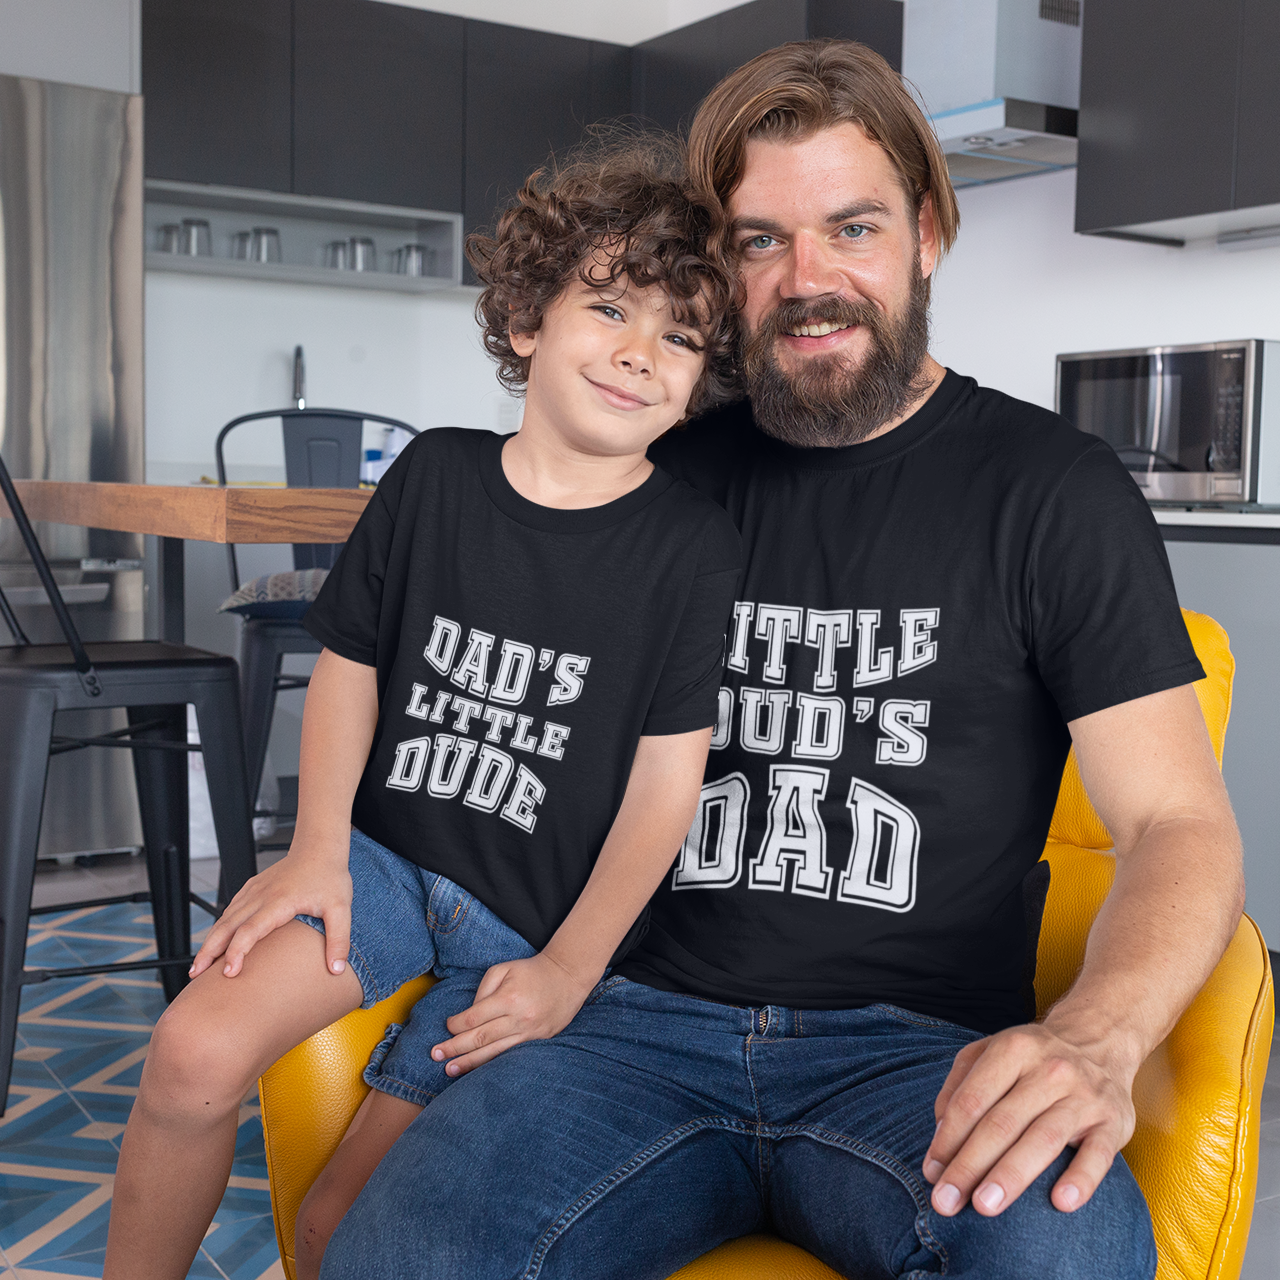 Sprinklecart Dad's Little Dude & Little Dud's Dad T Shirt Set for Dad and Son (Black)